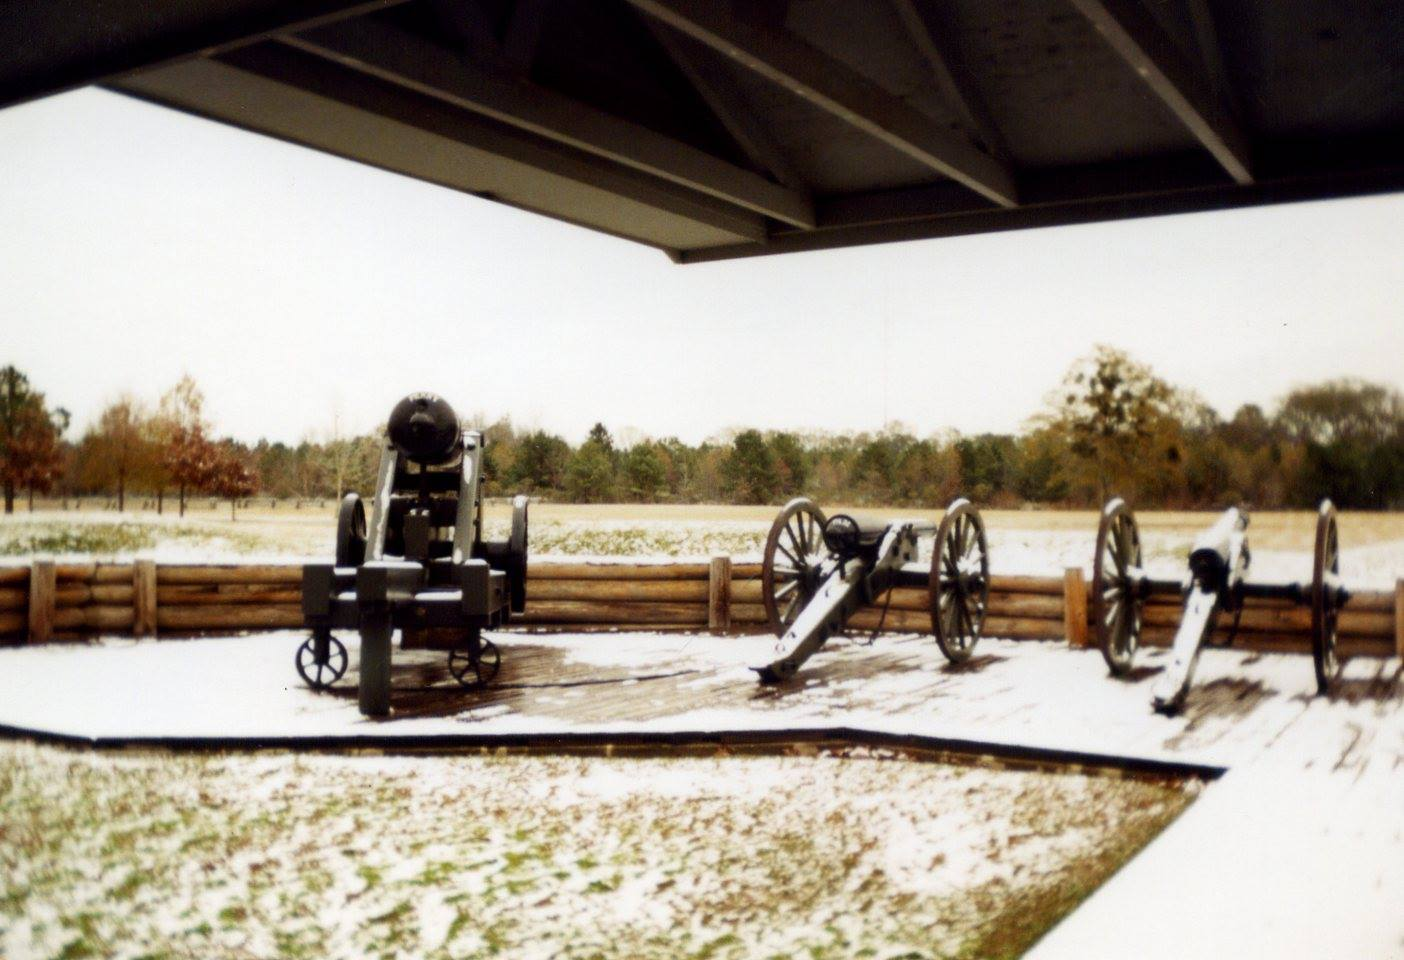 The 643 acre site encompasses a huge battlefield with recreated breastworks and trenches, as well as a museum